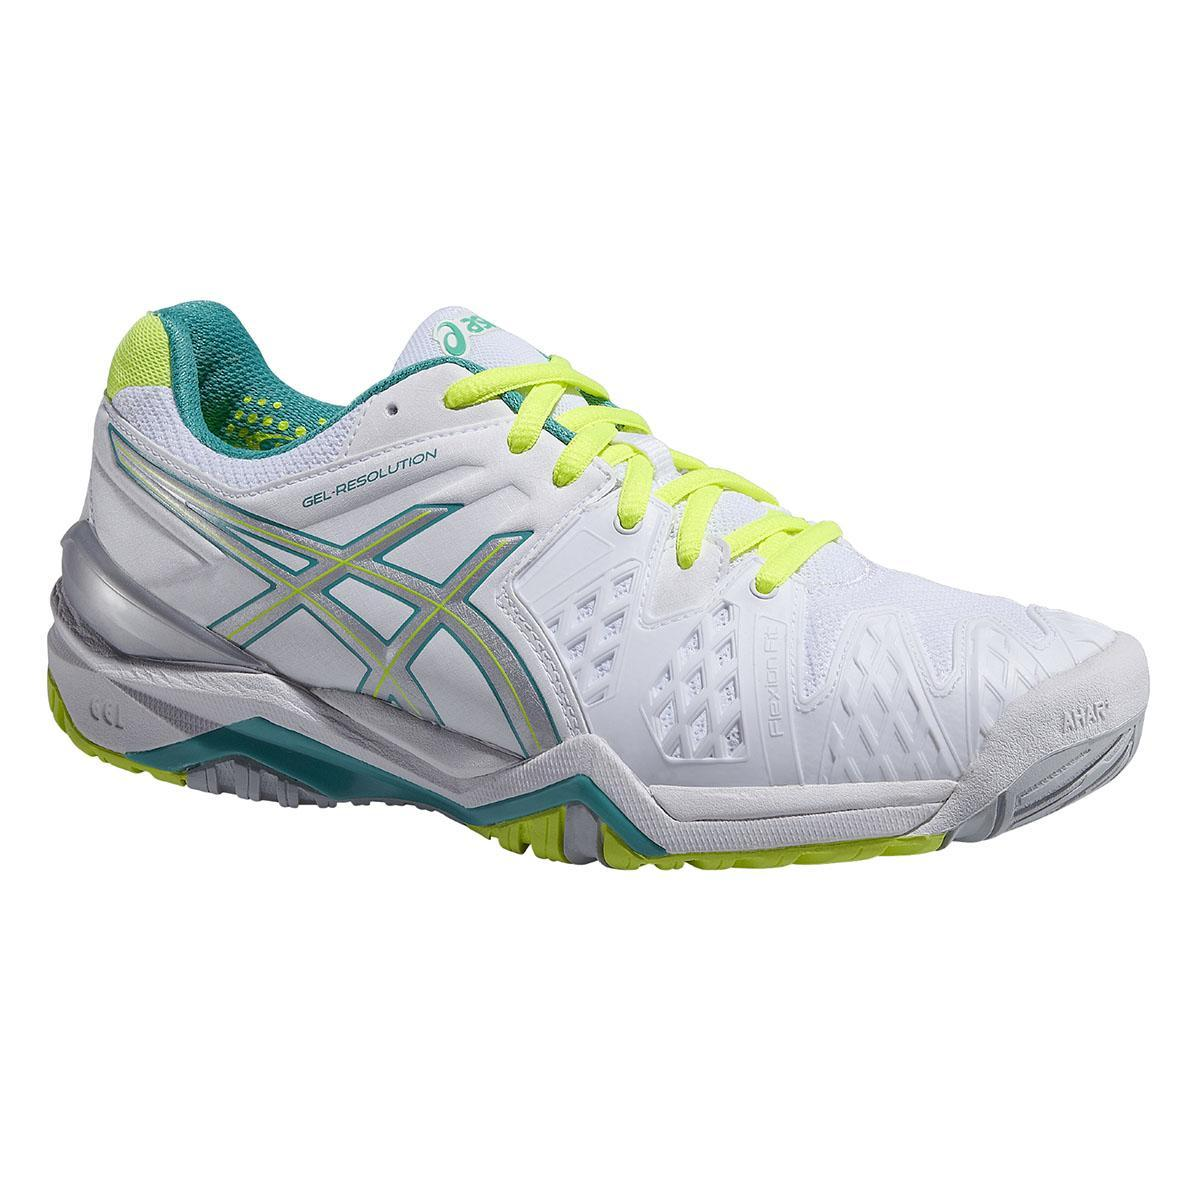 Asics Womens GEL Resolution 6 Tennis Shoes - White/Emerald Green/Silver